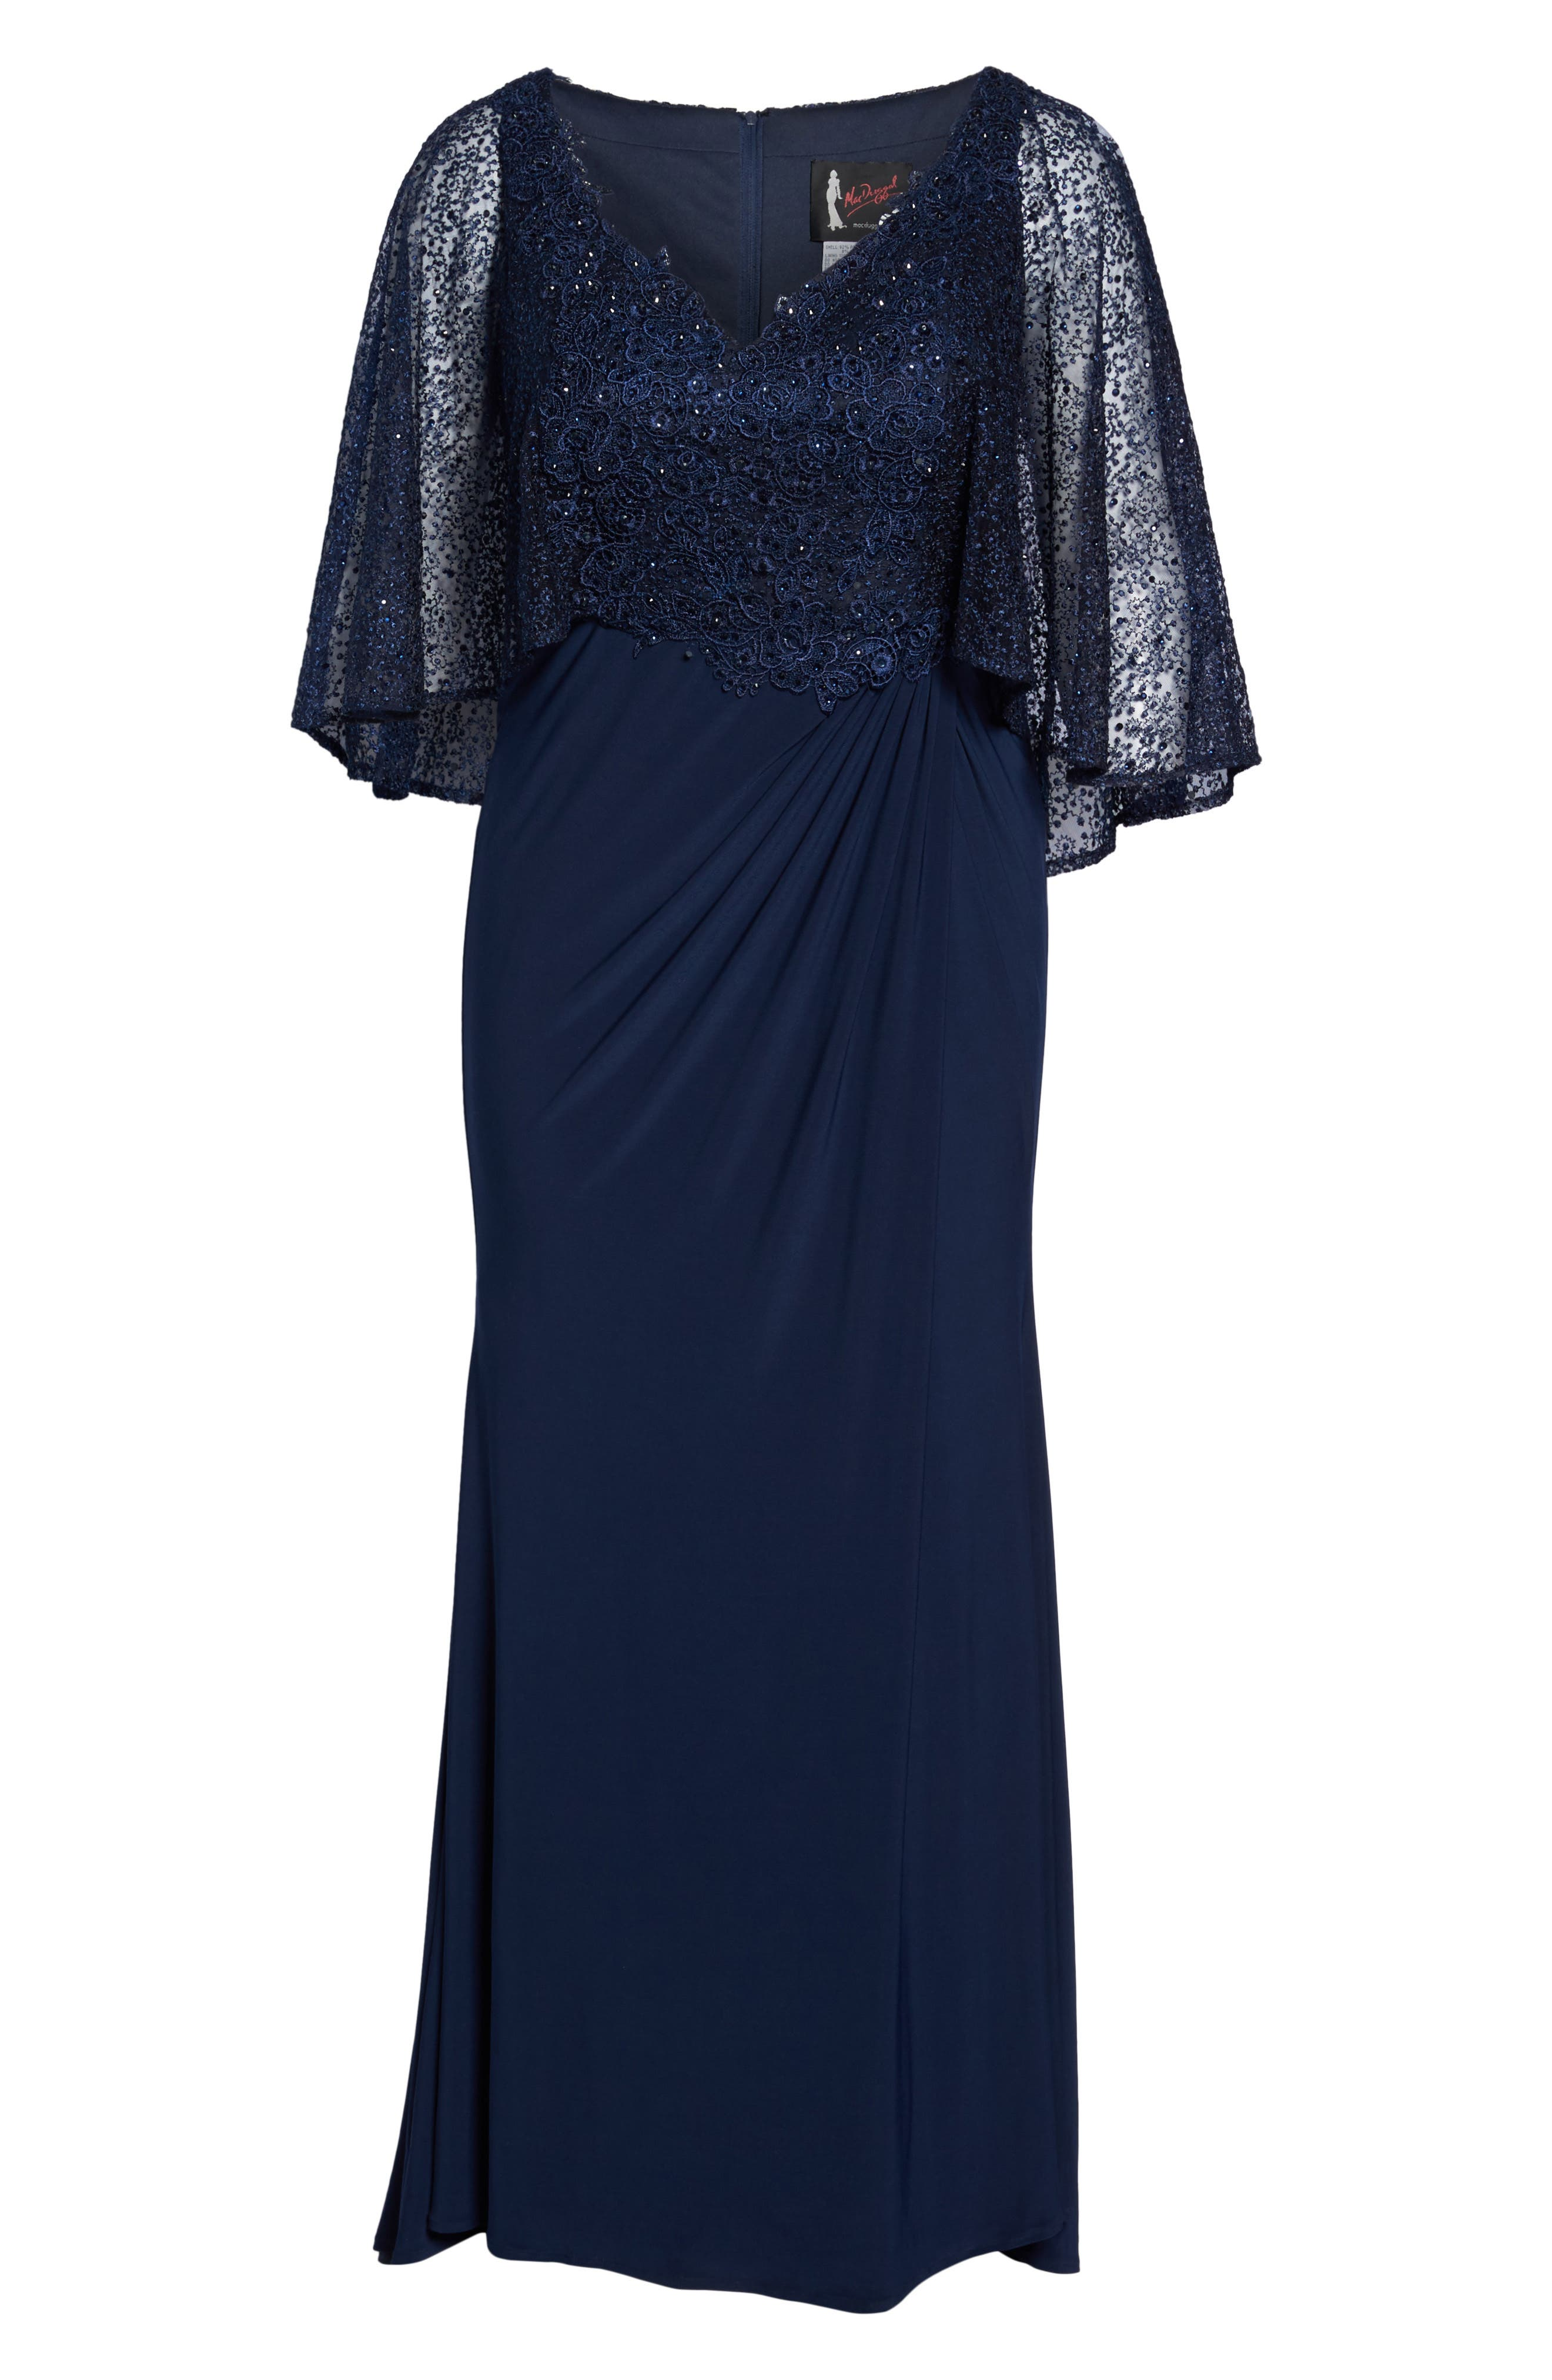 MAC DUGGAL, Lace Capelet Column Gown, Alternate thumbnail 6, color, MIDNIGHT